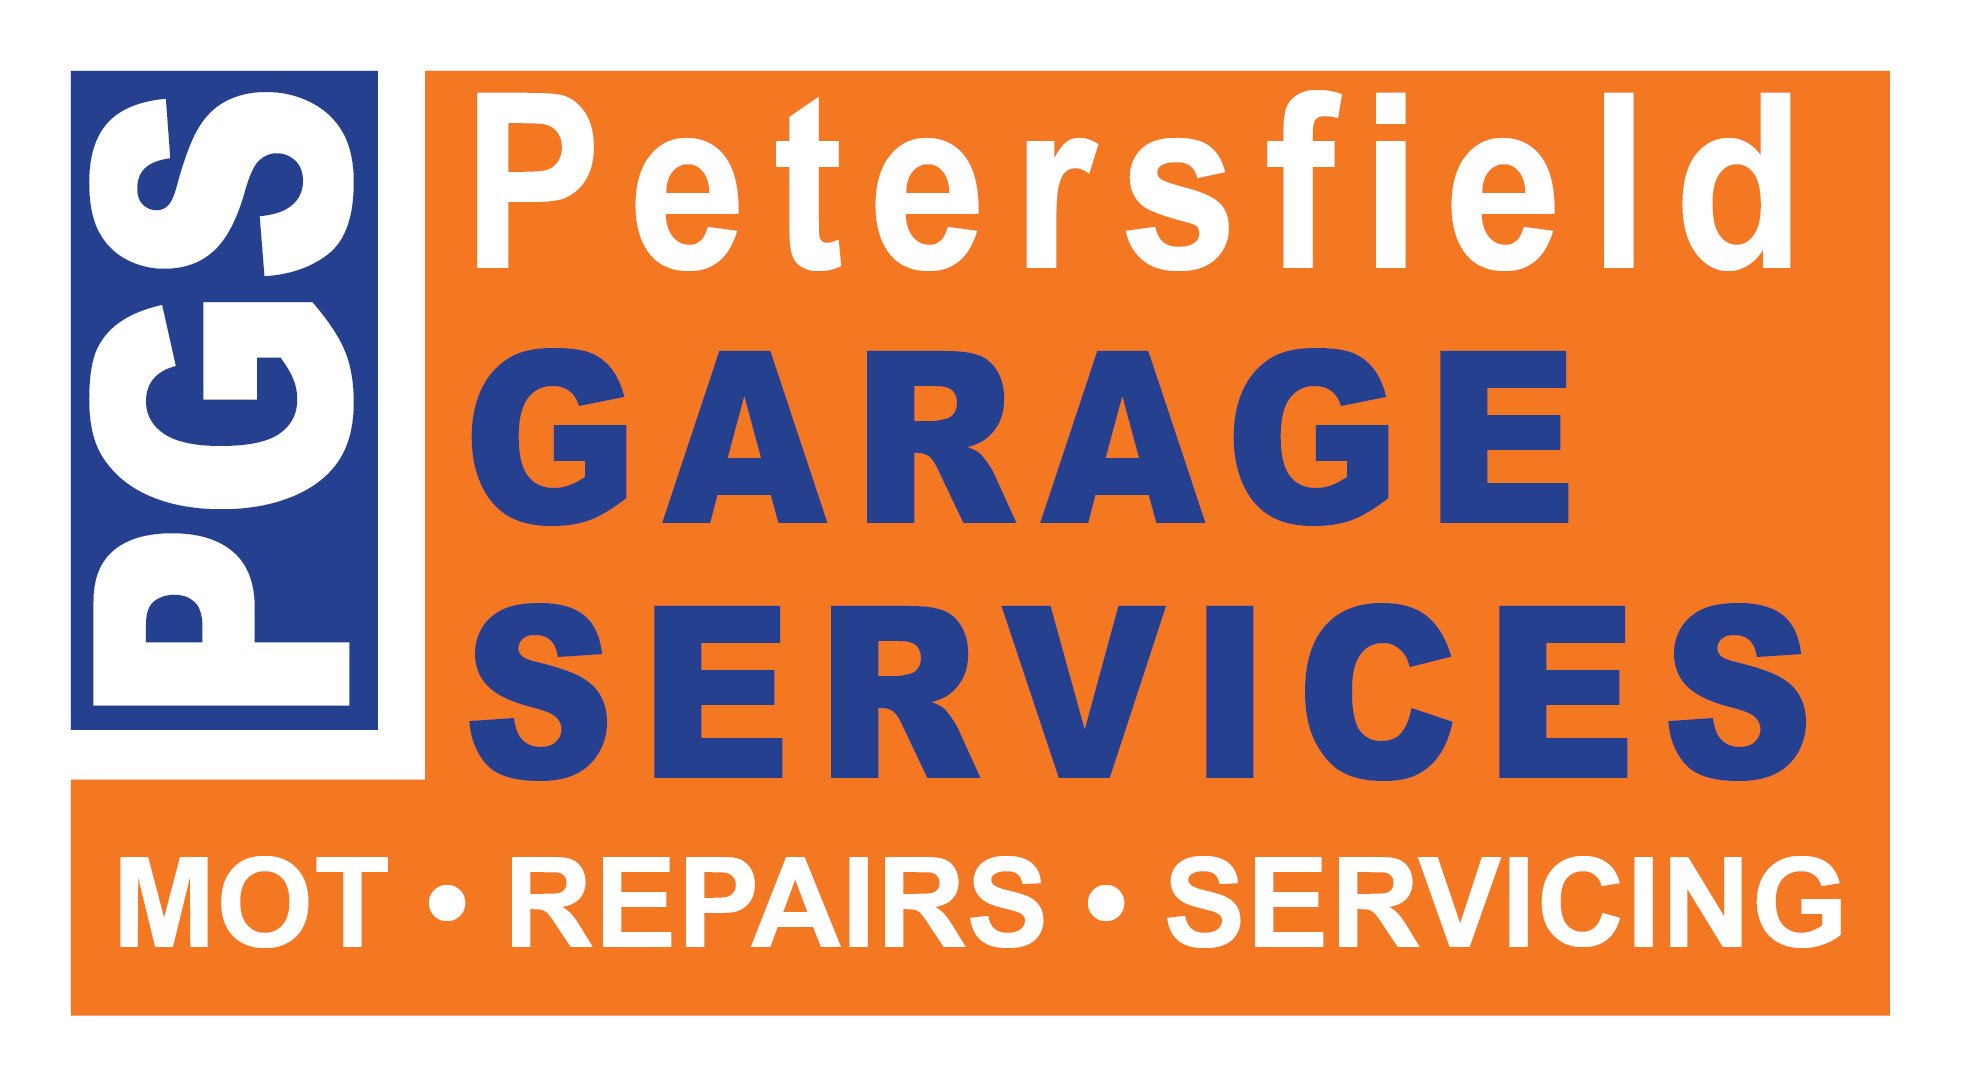 Petersfield GARAGE SERVICES